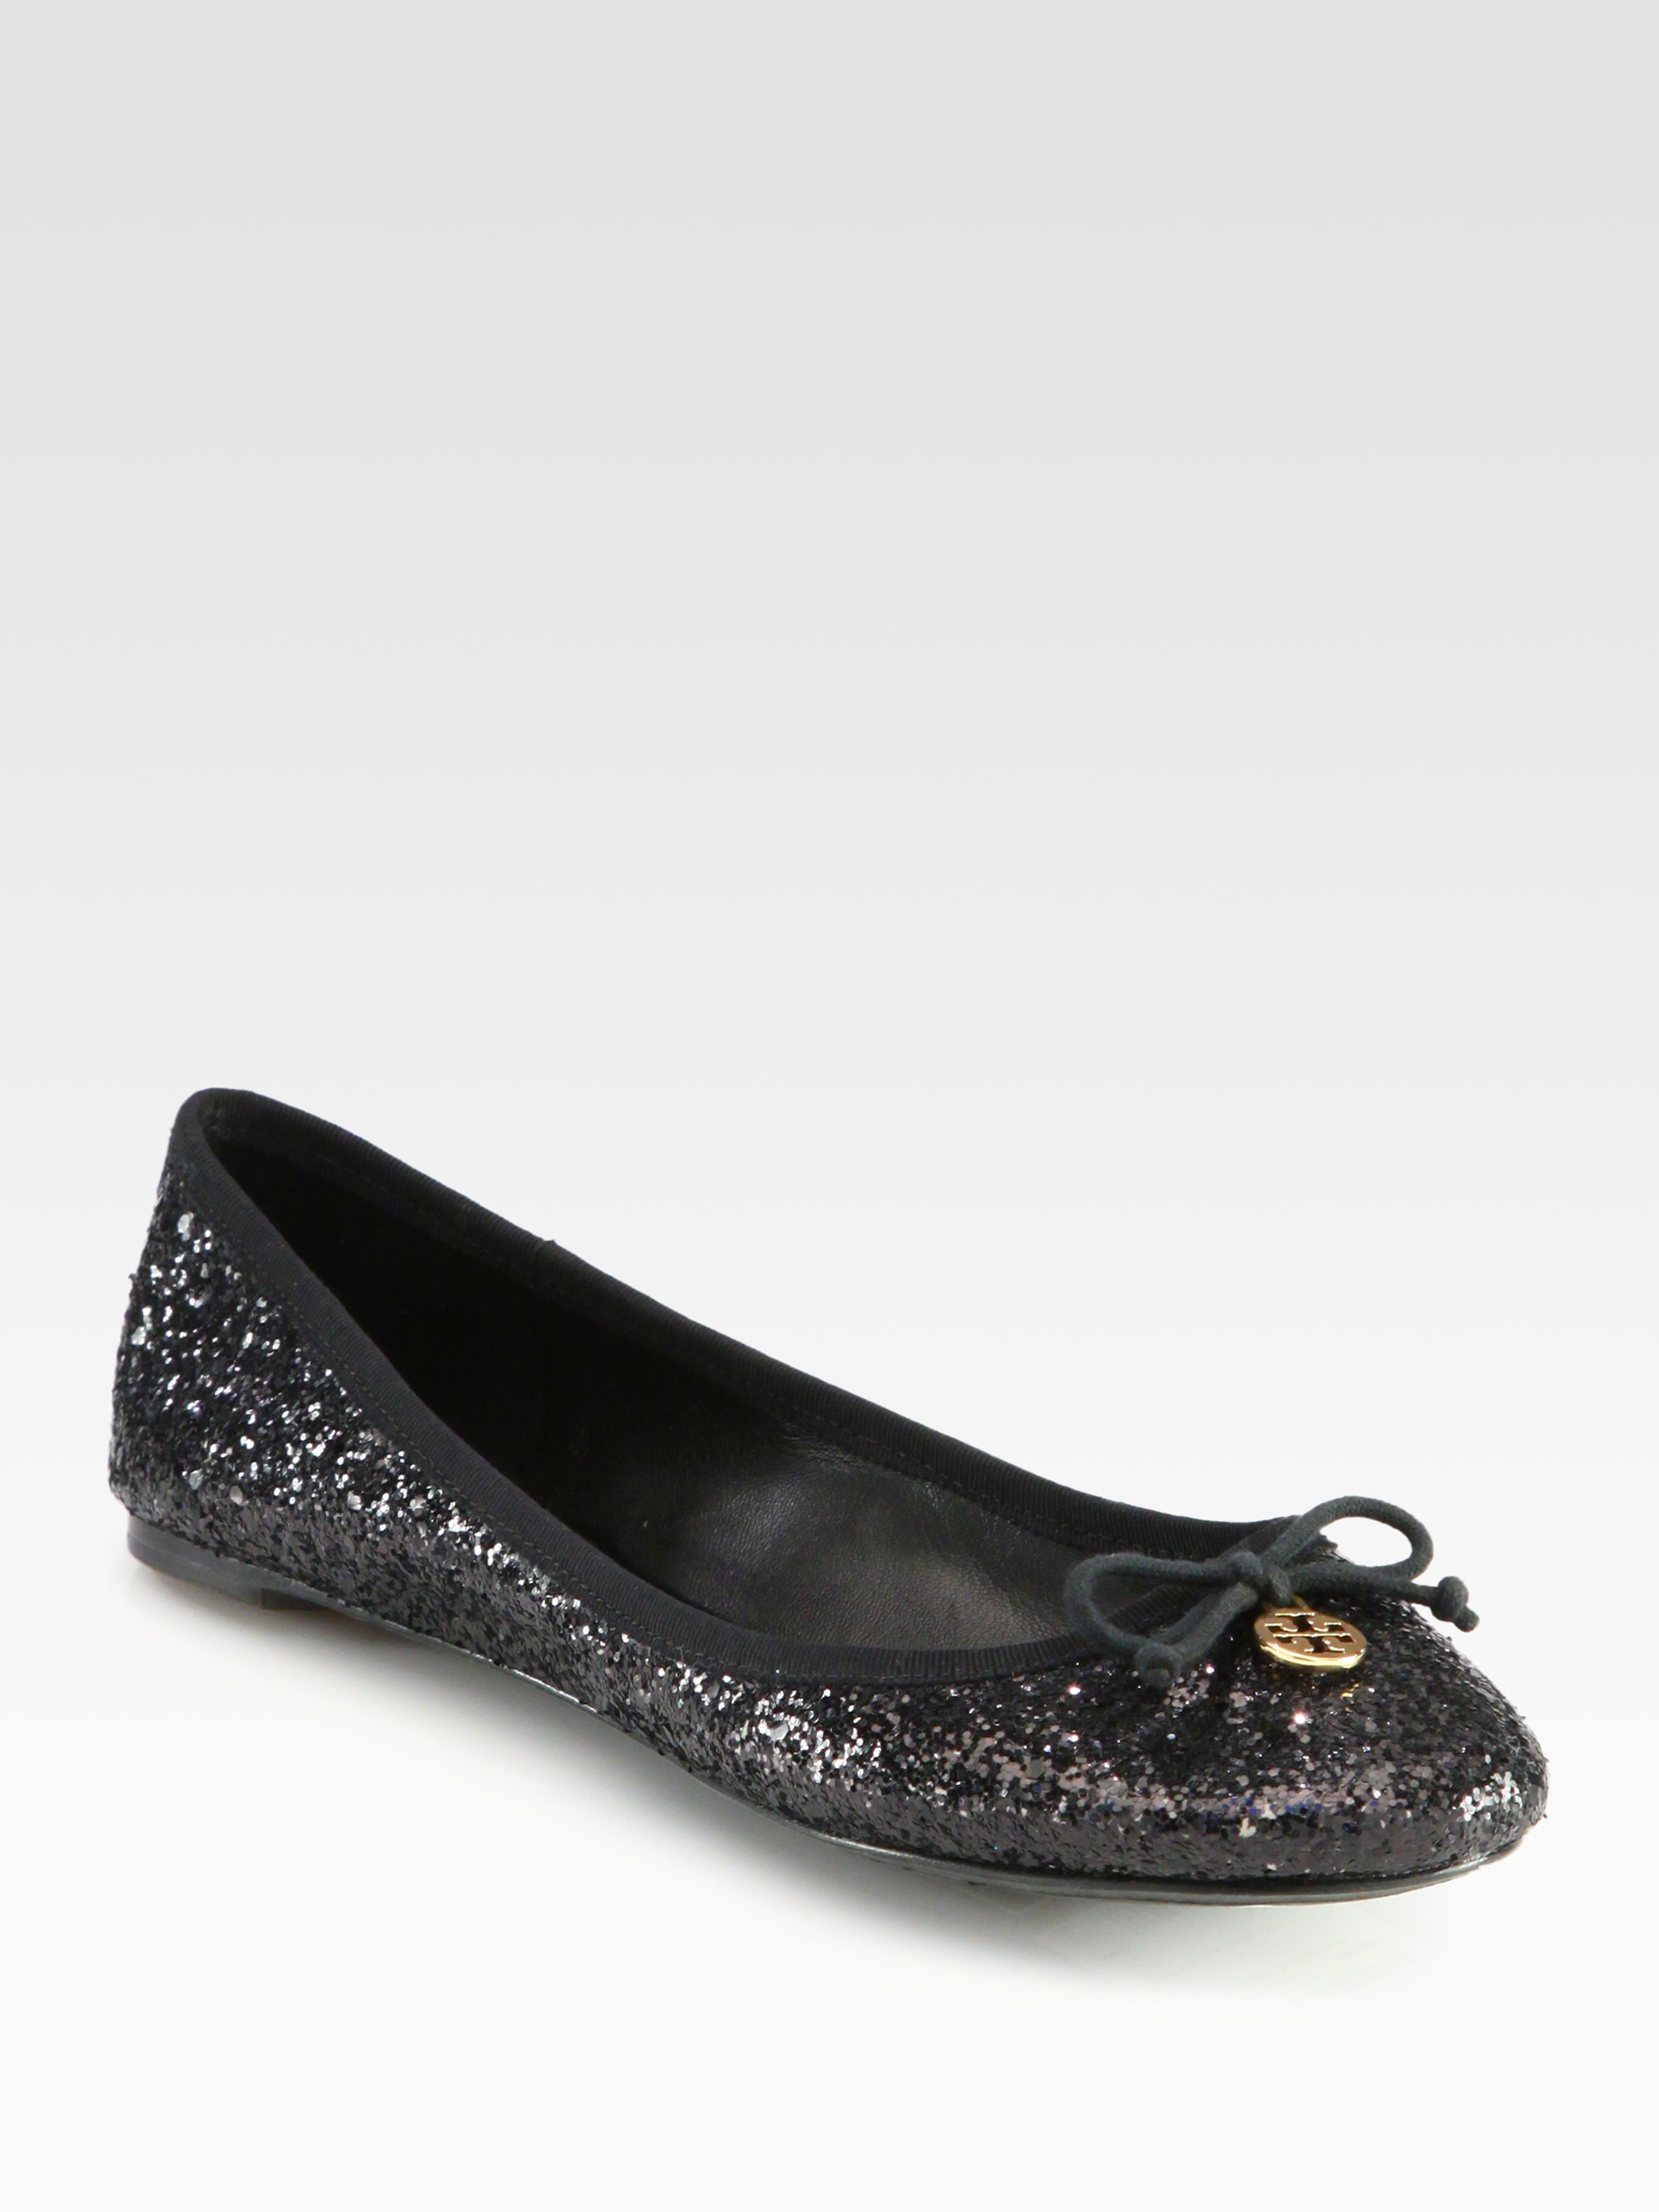 5644c223f6db ... netherlands lyst tory burch chelsea glitter ballet flats in black ff922  2021a